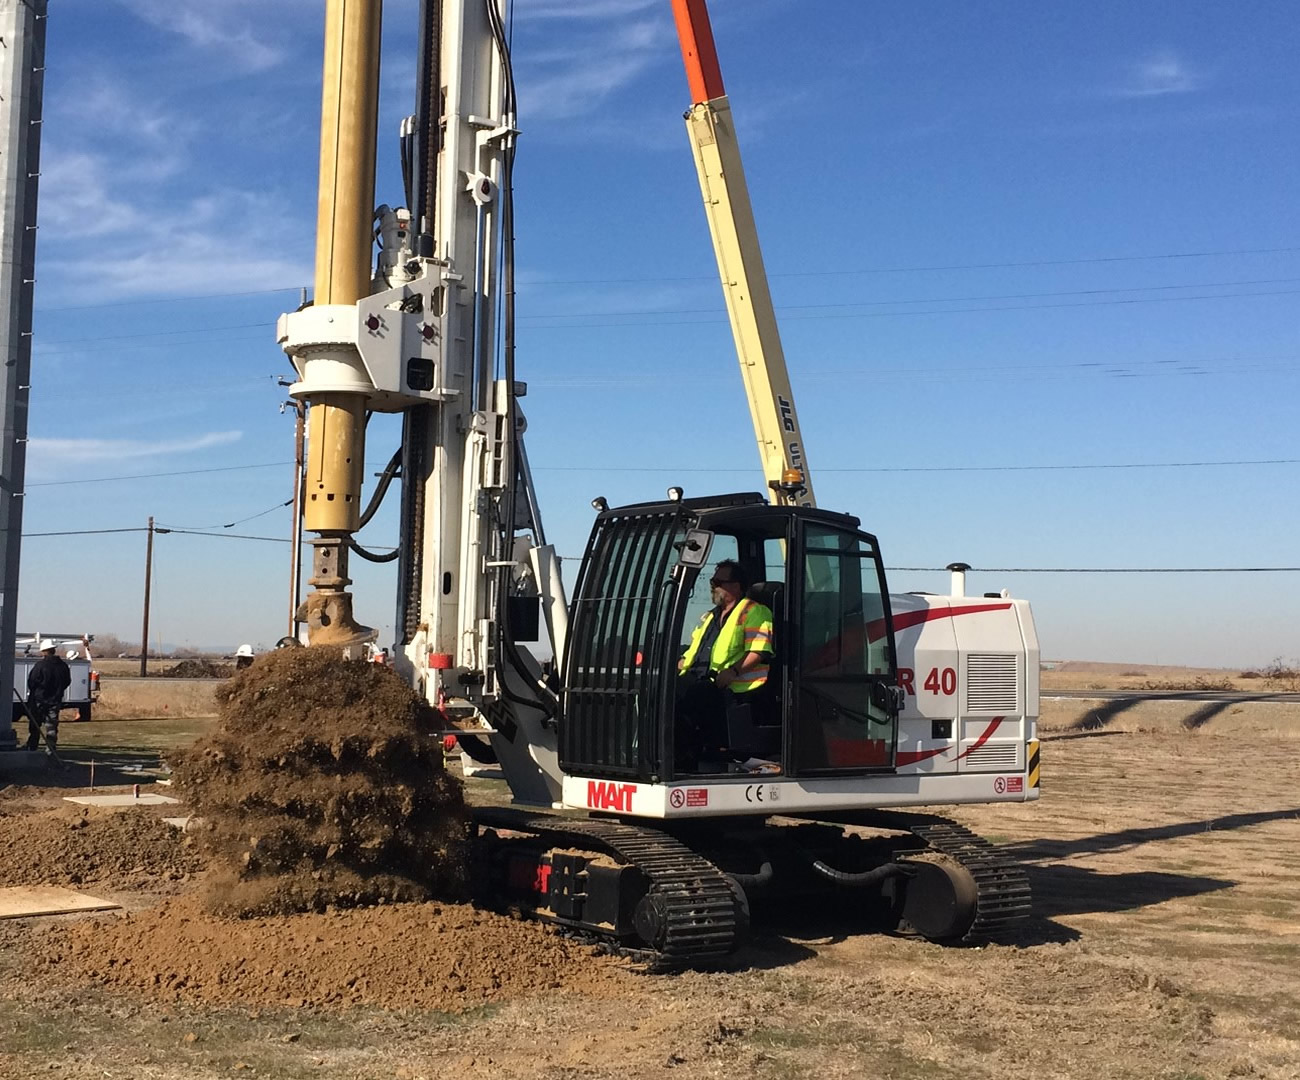 Mait Usa Equipment And Accessories Hydraulic Rigs Series